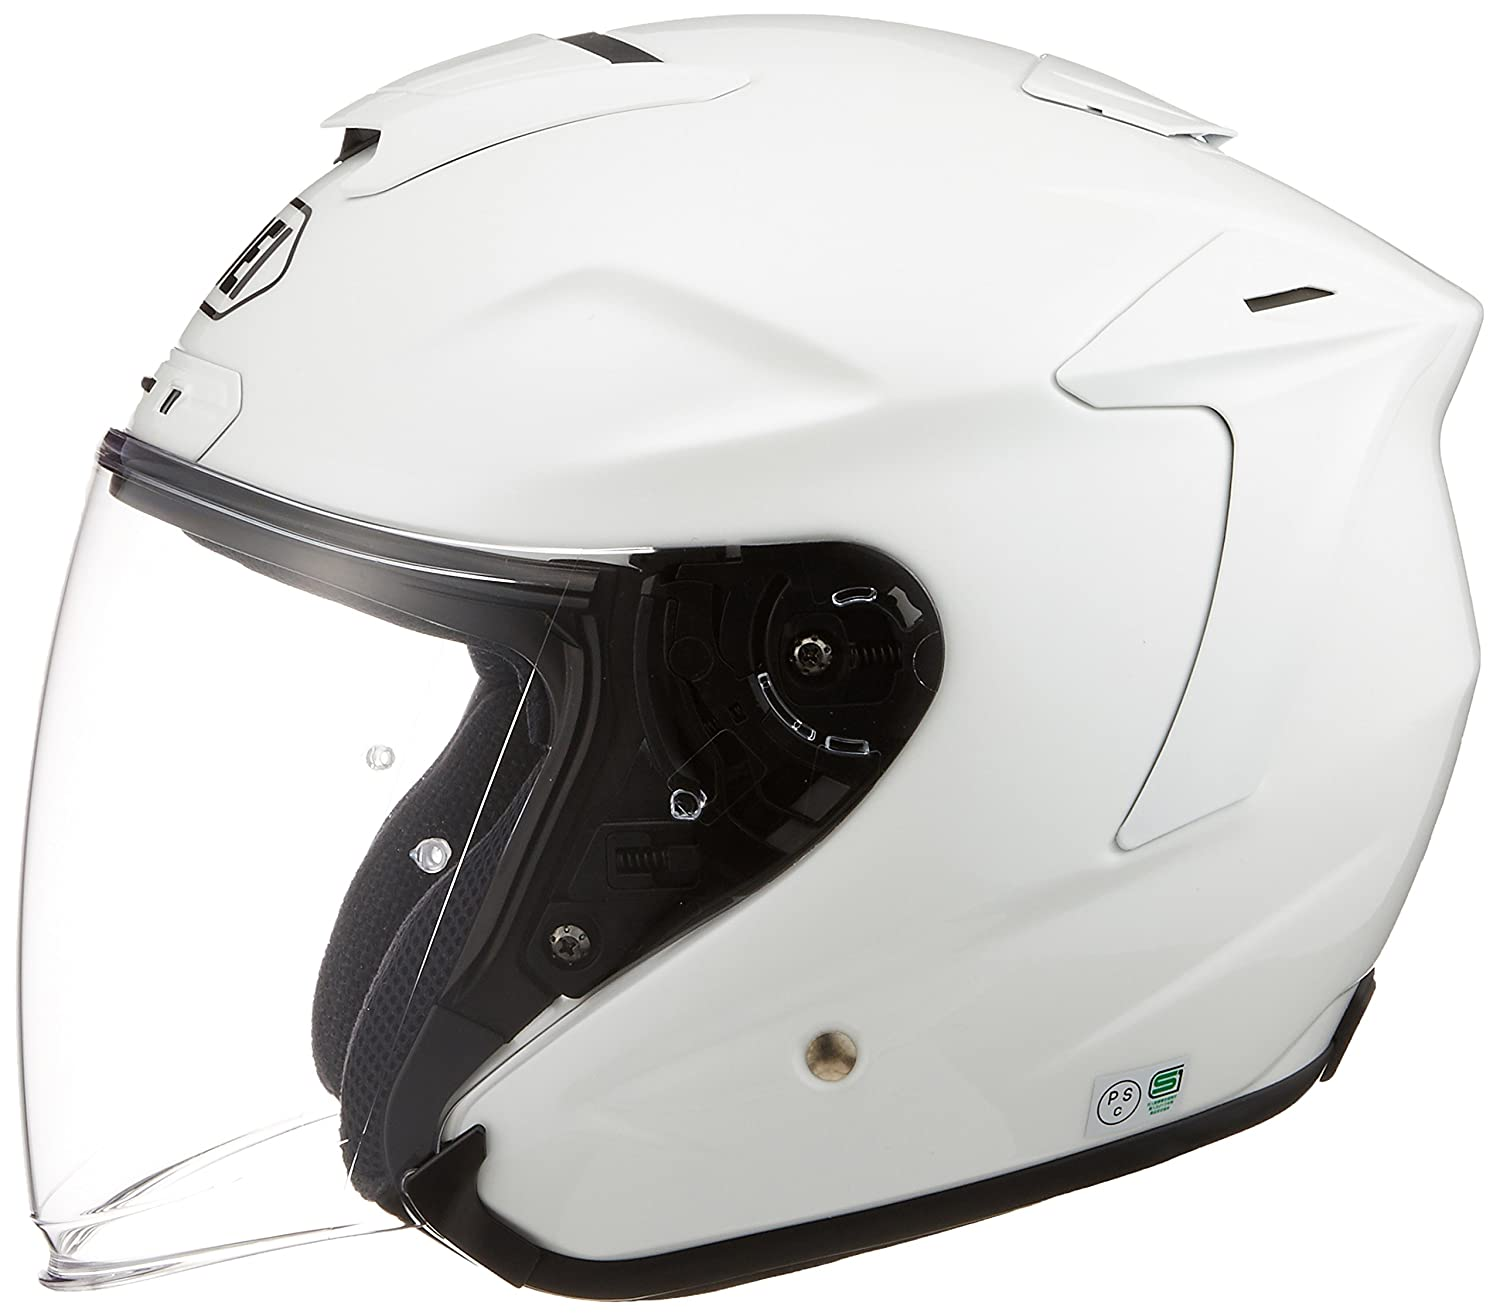 Amazon.com: Shoei J-FORCE4 Luminous White Size L (59cm) Helmet: Automotive